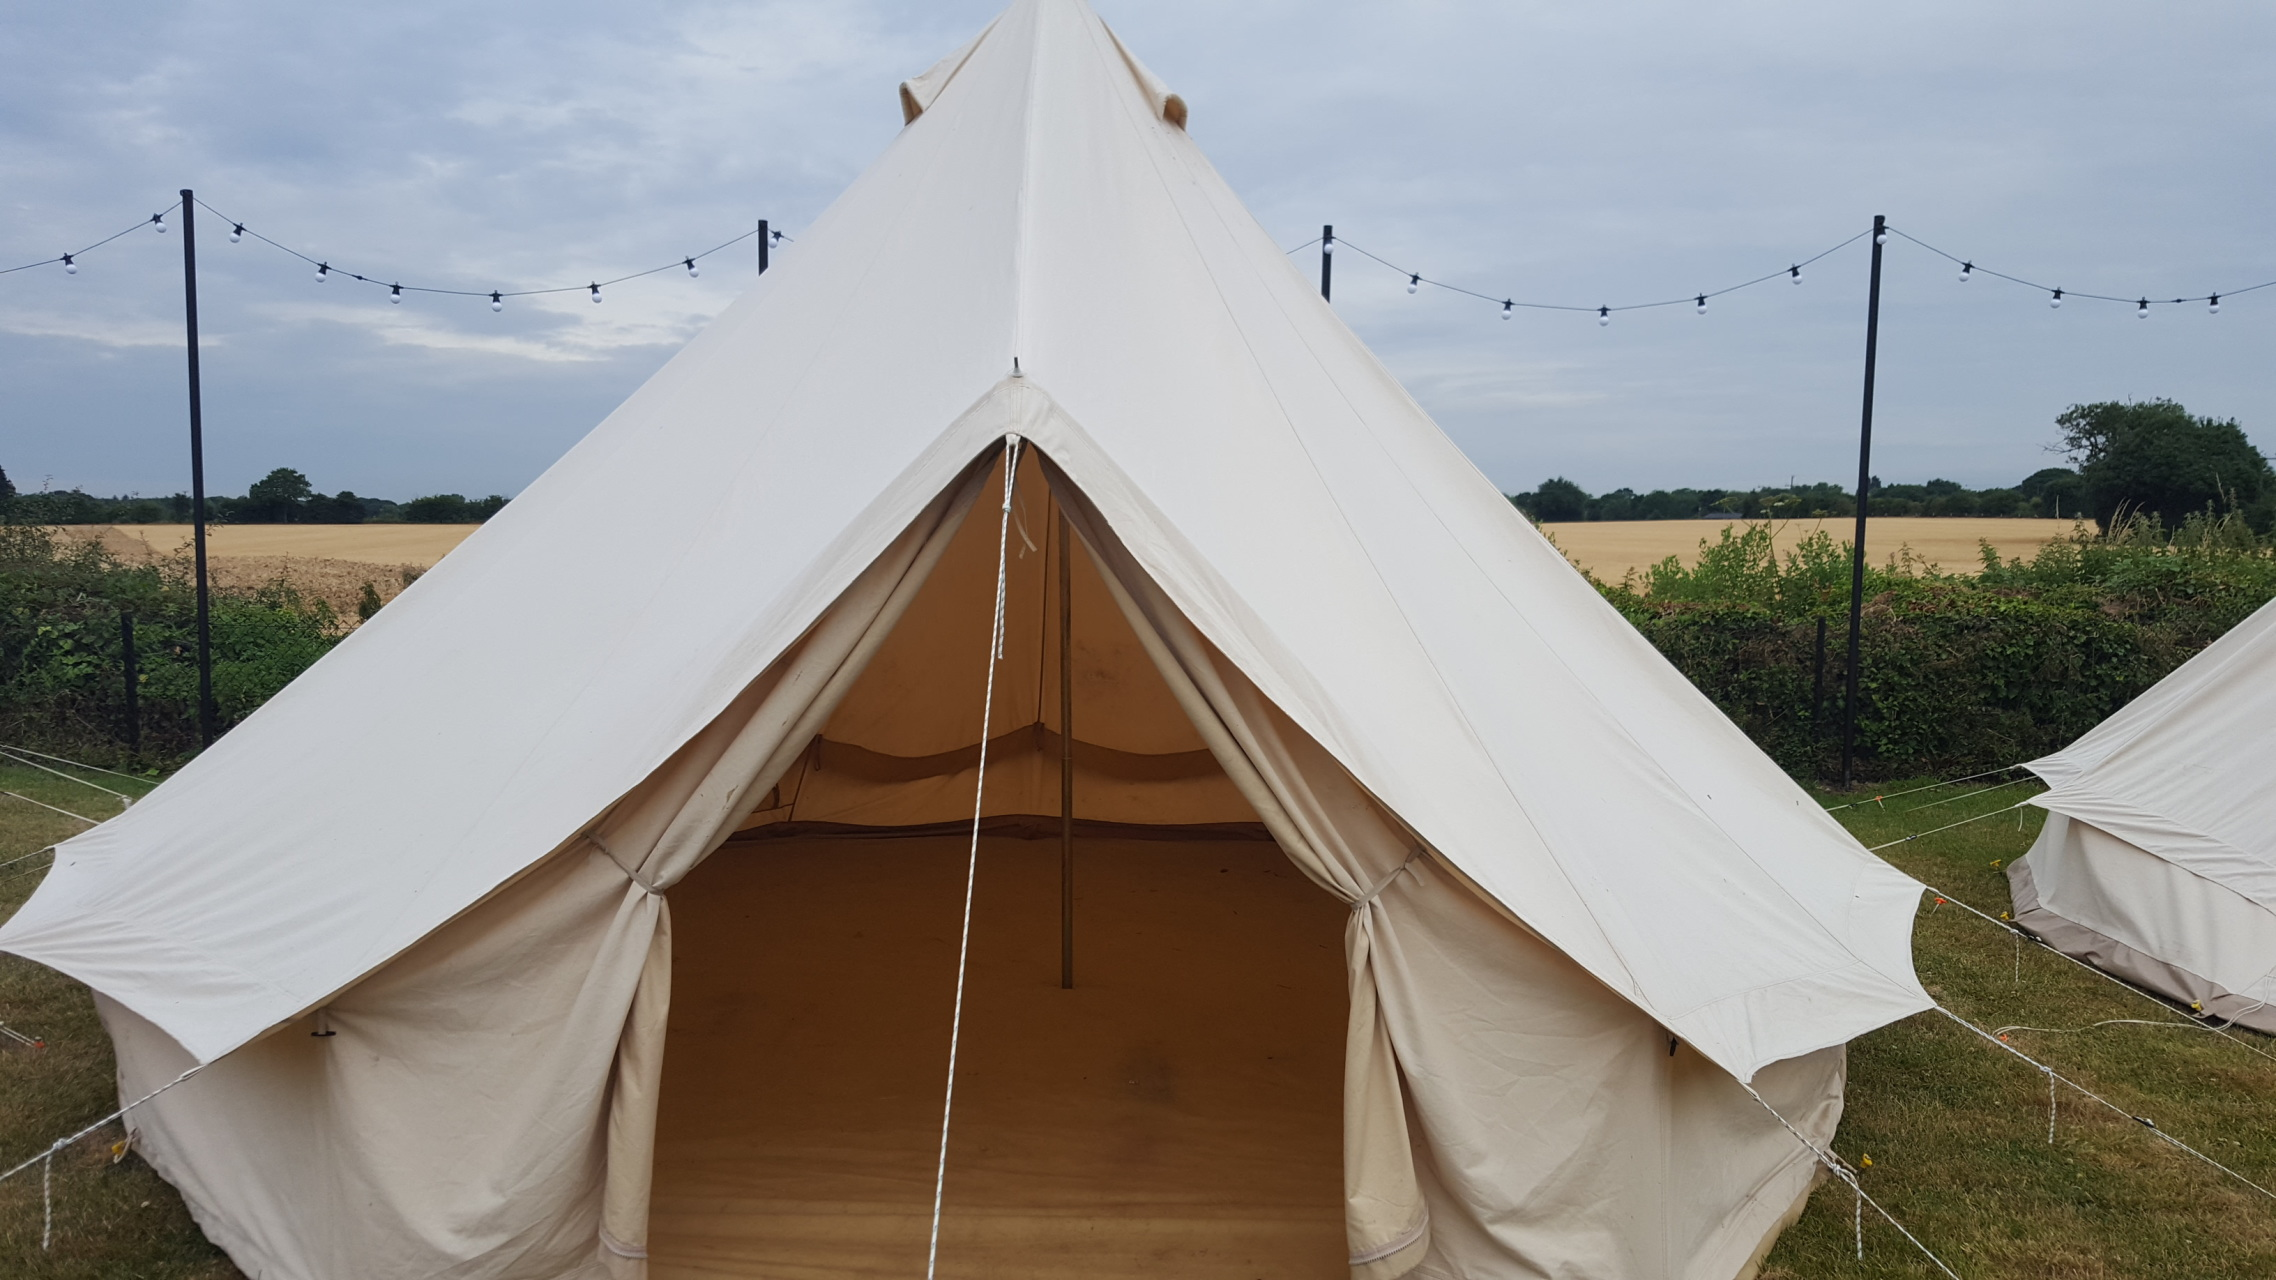 5m bell Pitch only tent (PENNFEST) & PENNFEST 2018 - RENT BELL TENTS